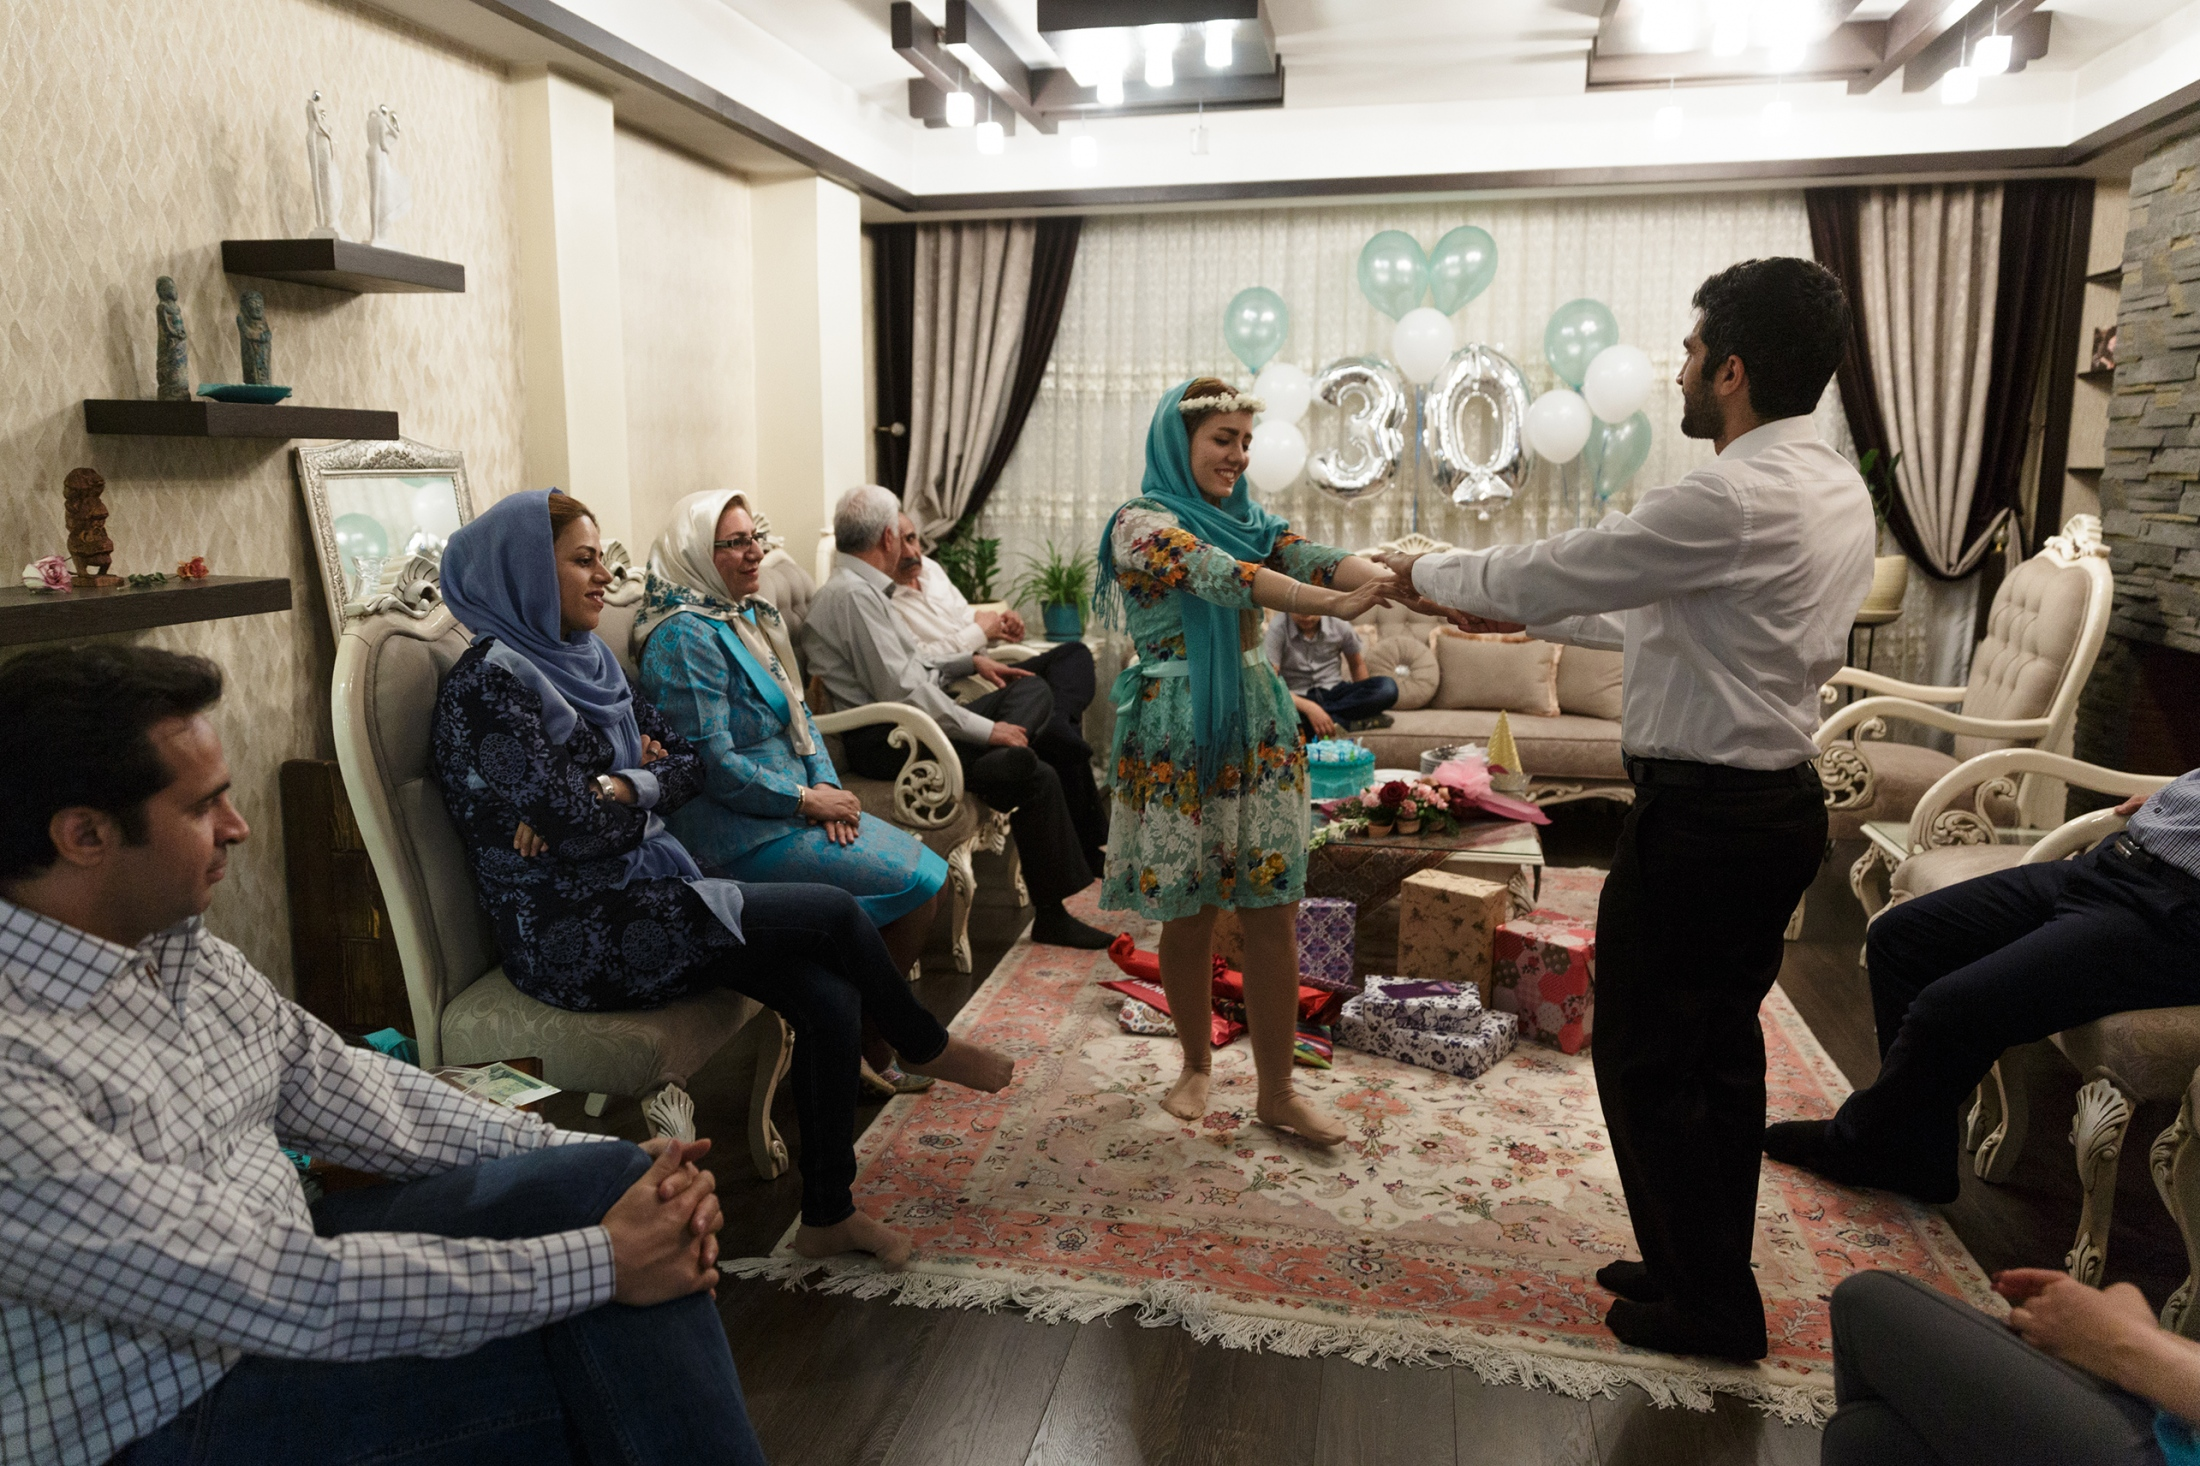 Hoda and Hamed met in 2011 during their studies and got married ve years later. They dance together on Hoda's 30th birthday in the family circle in their appartement in Tehran.